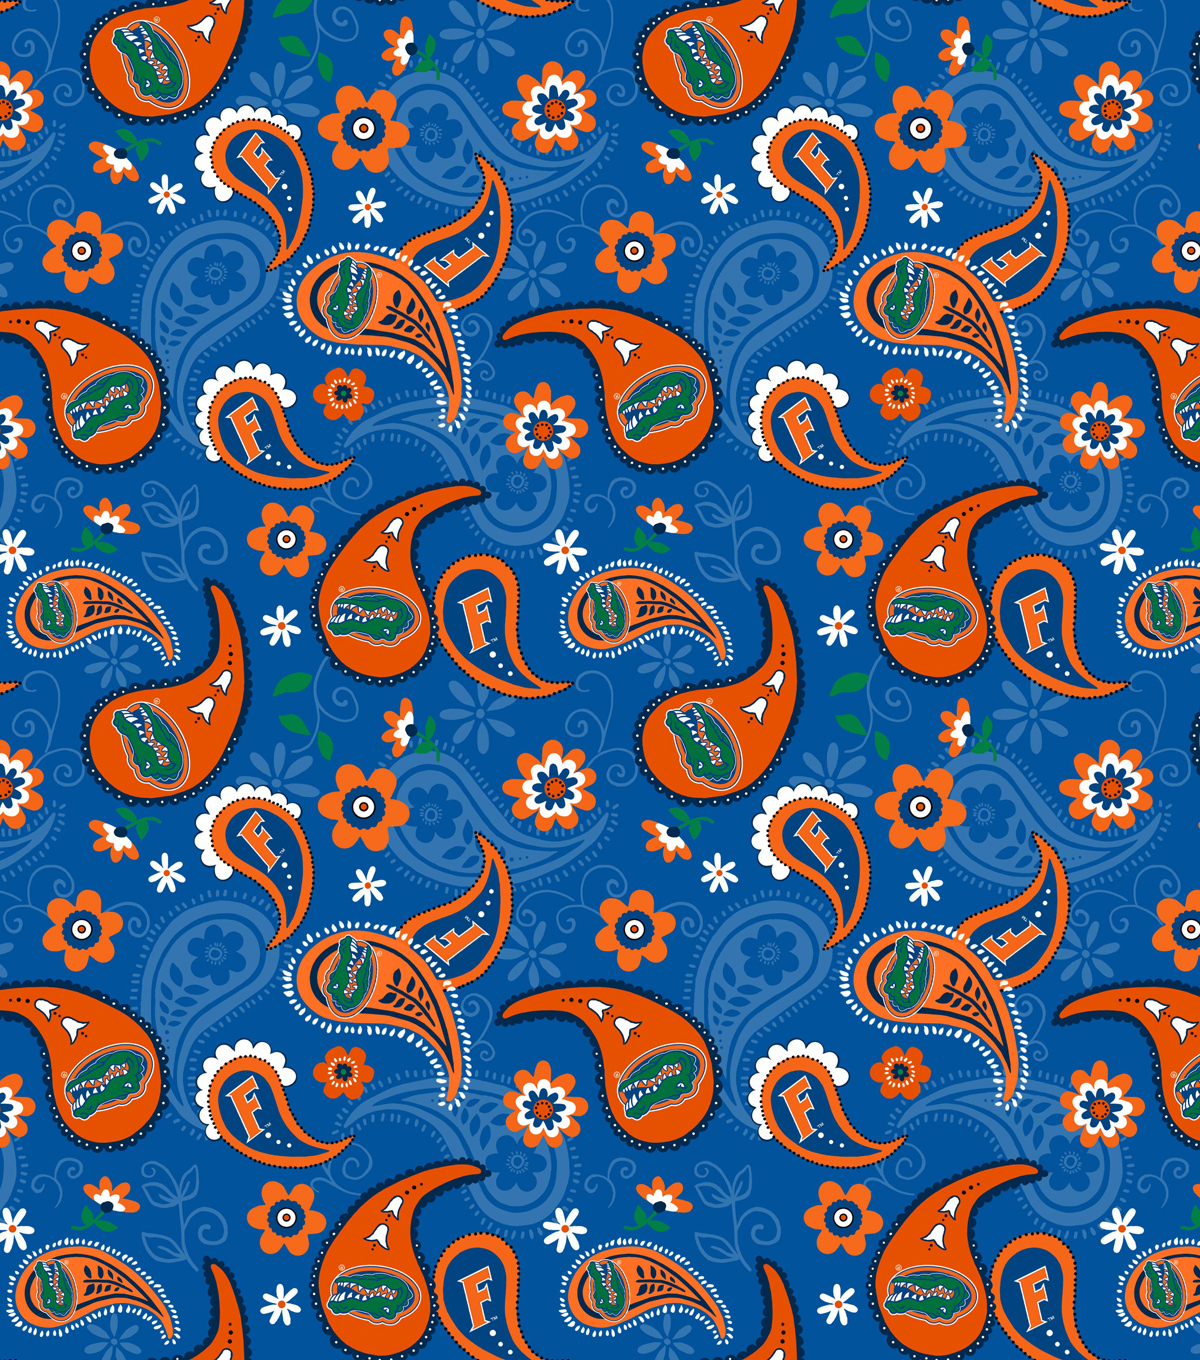 University of Florida Cotton Fabric-Paisley